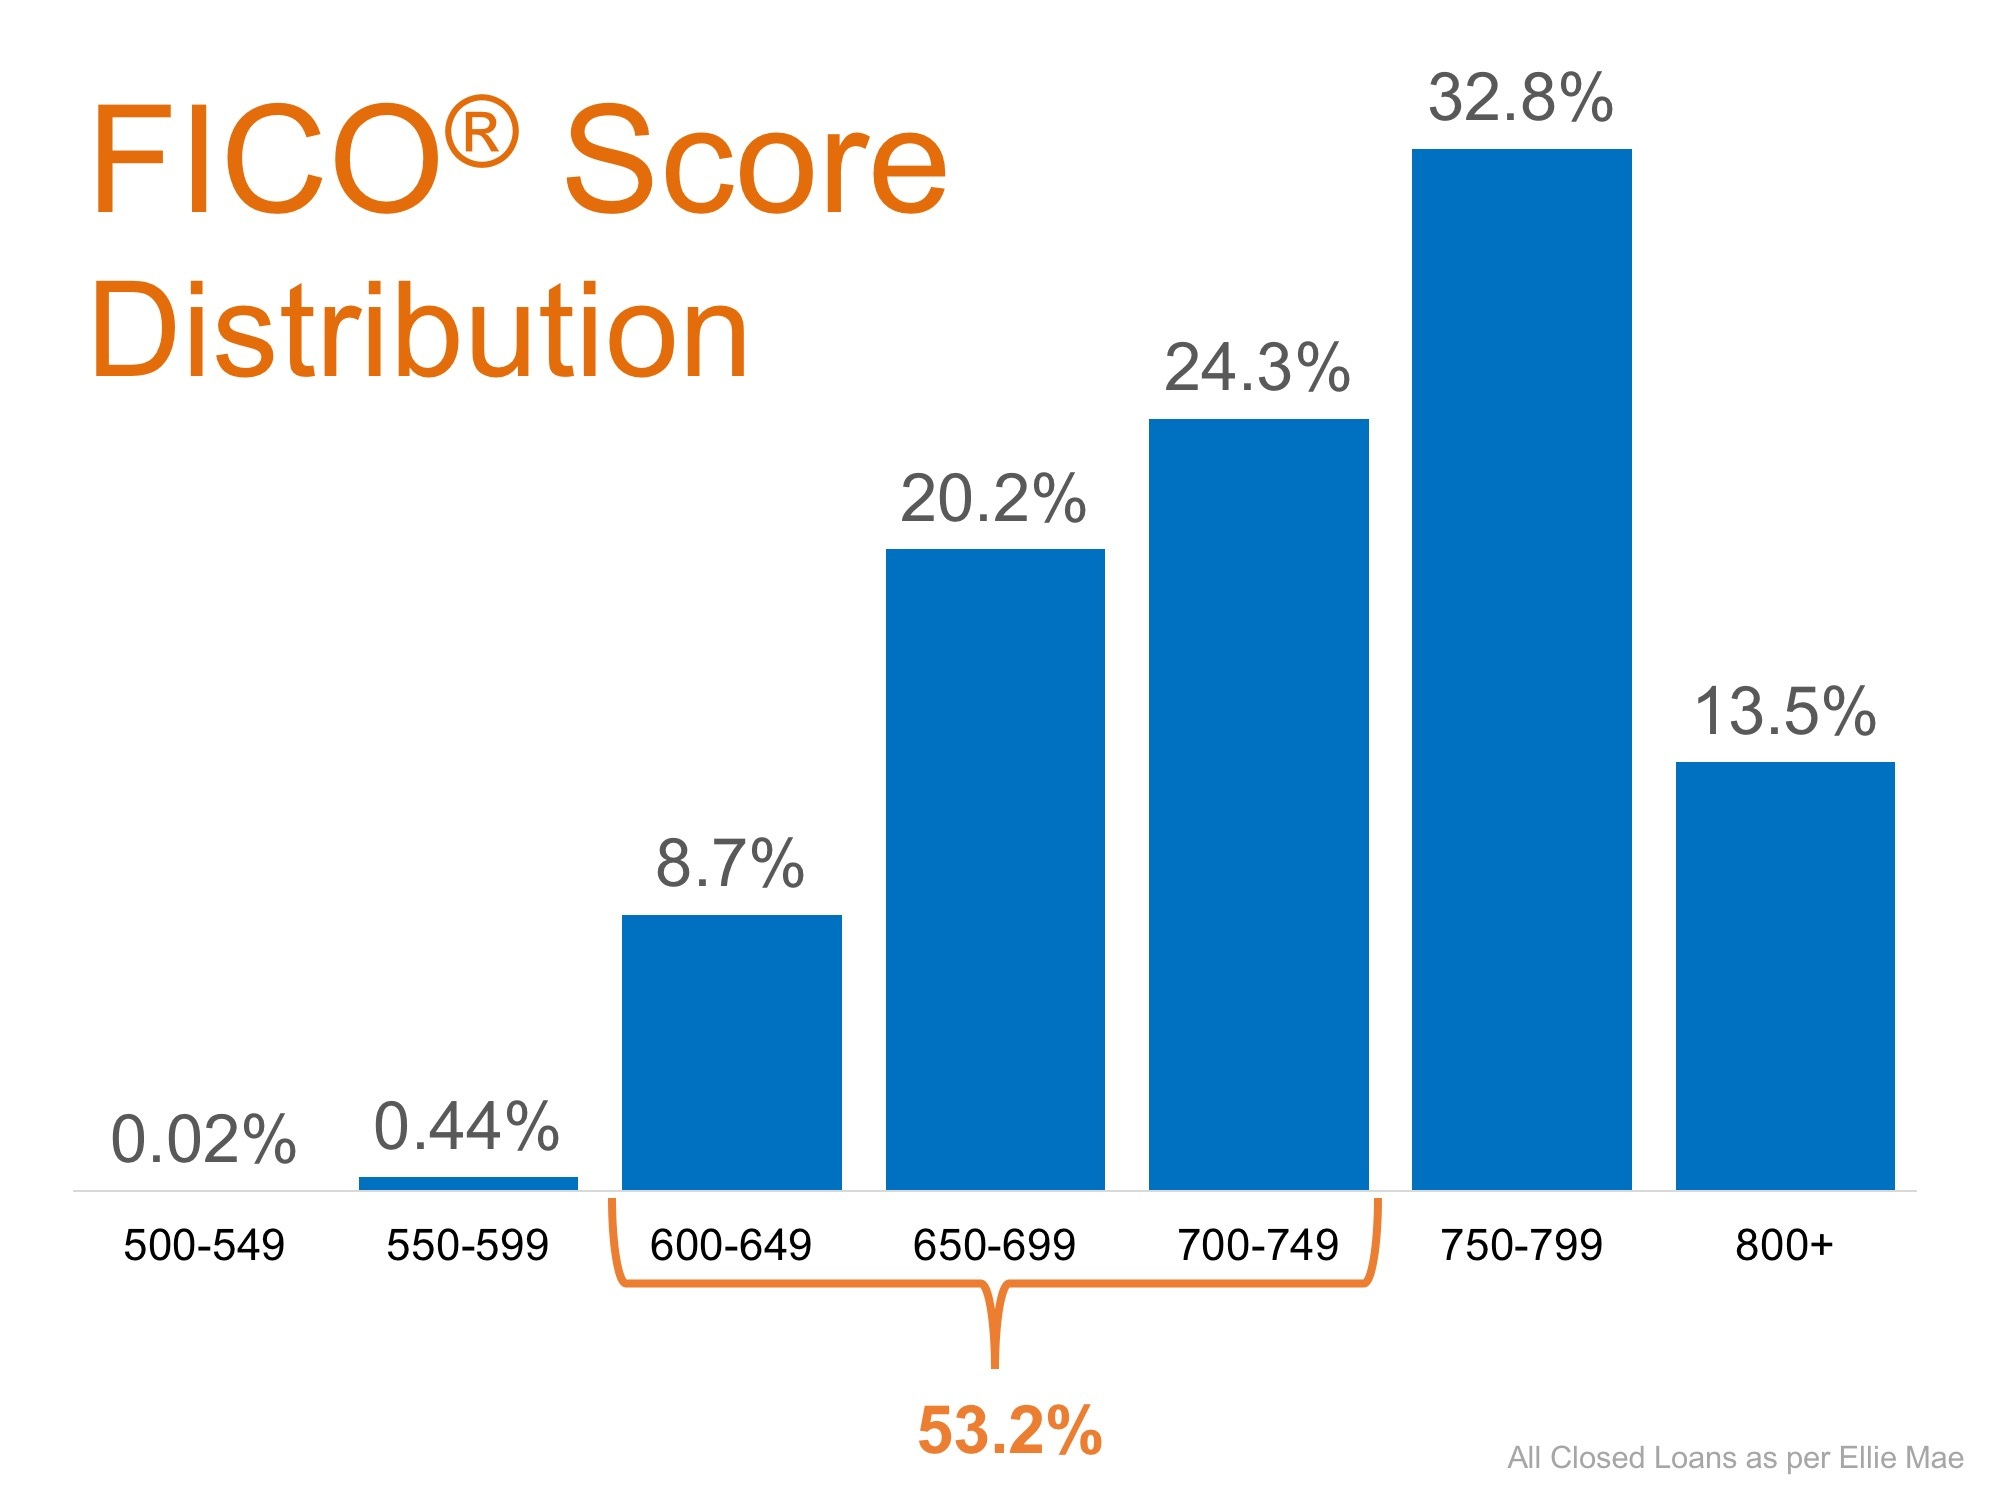 FICO score distribution